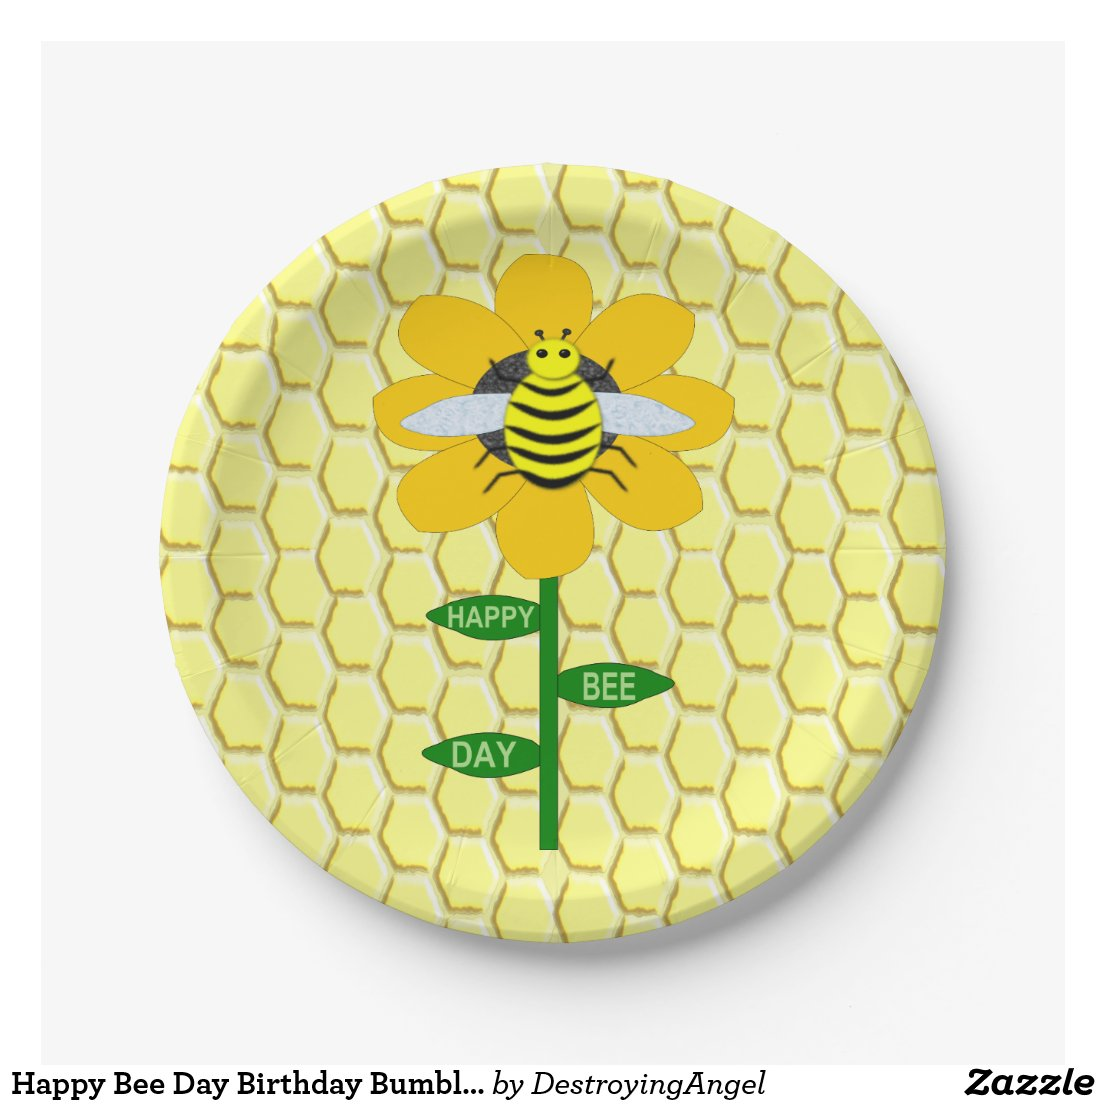 Happy Bee Day Birthday Bumblebee Paper Plate